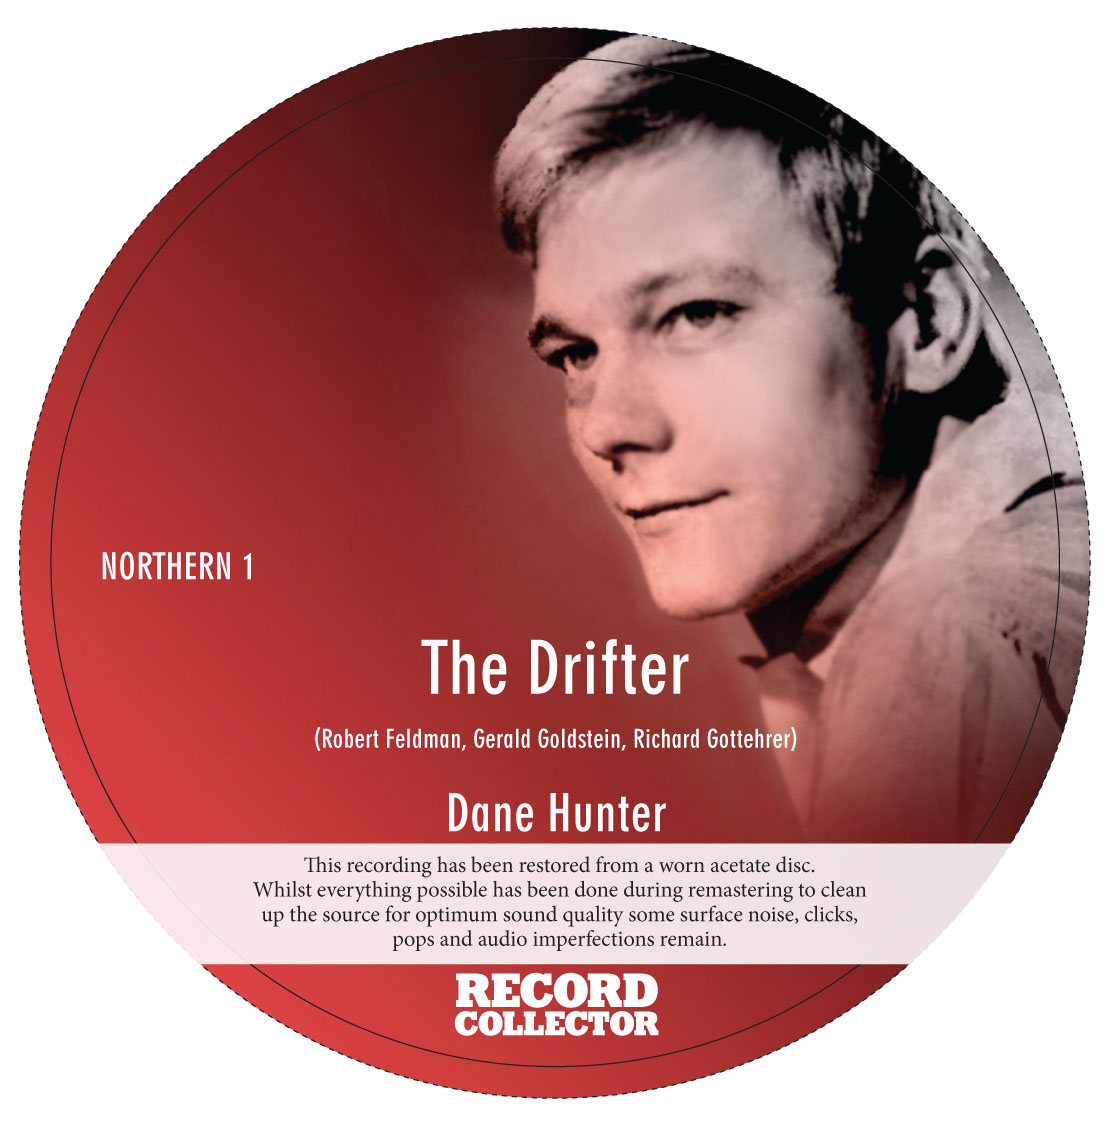 Dane Hunter - The Drifter 7""